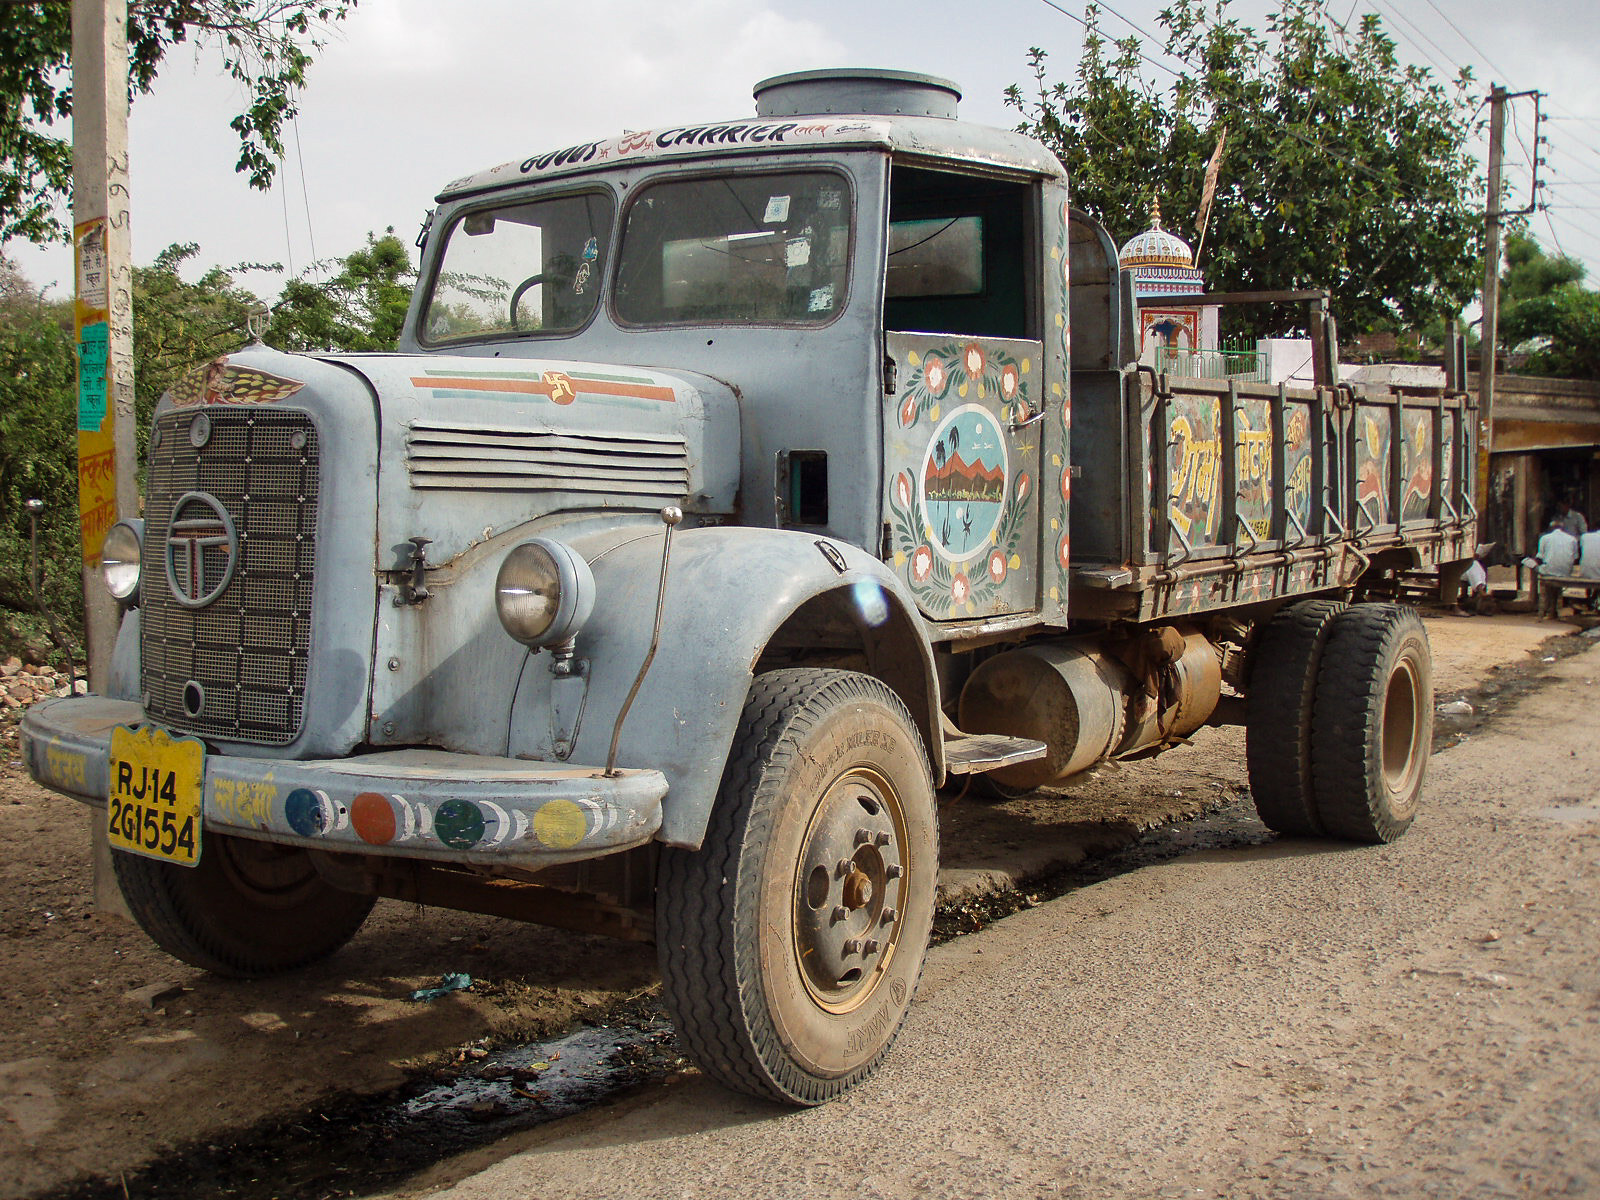 Photograph Painted truck in Rajasthan, India by Walter Schaerer on 500px